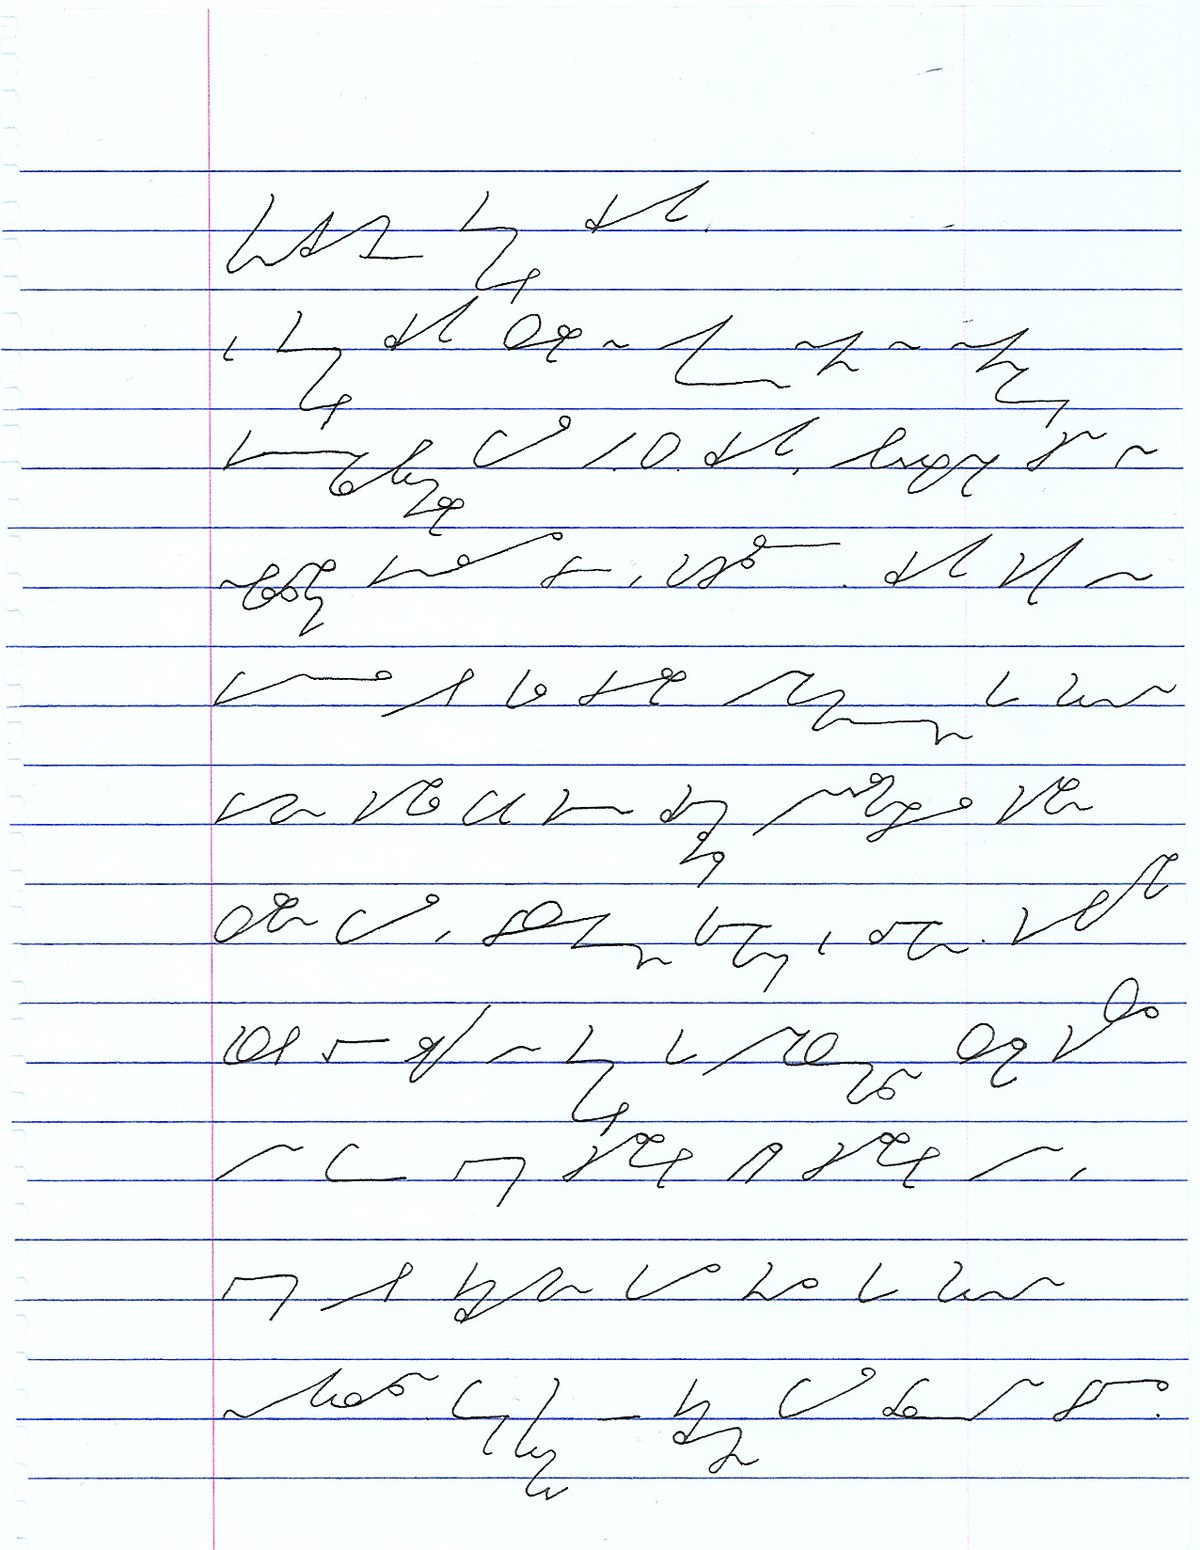 Steno handwriting